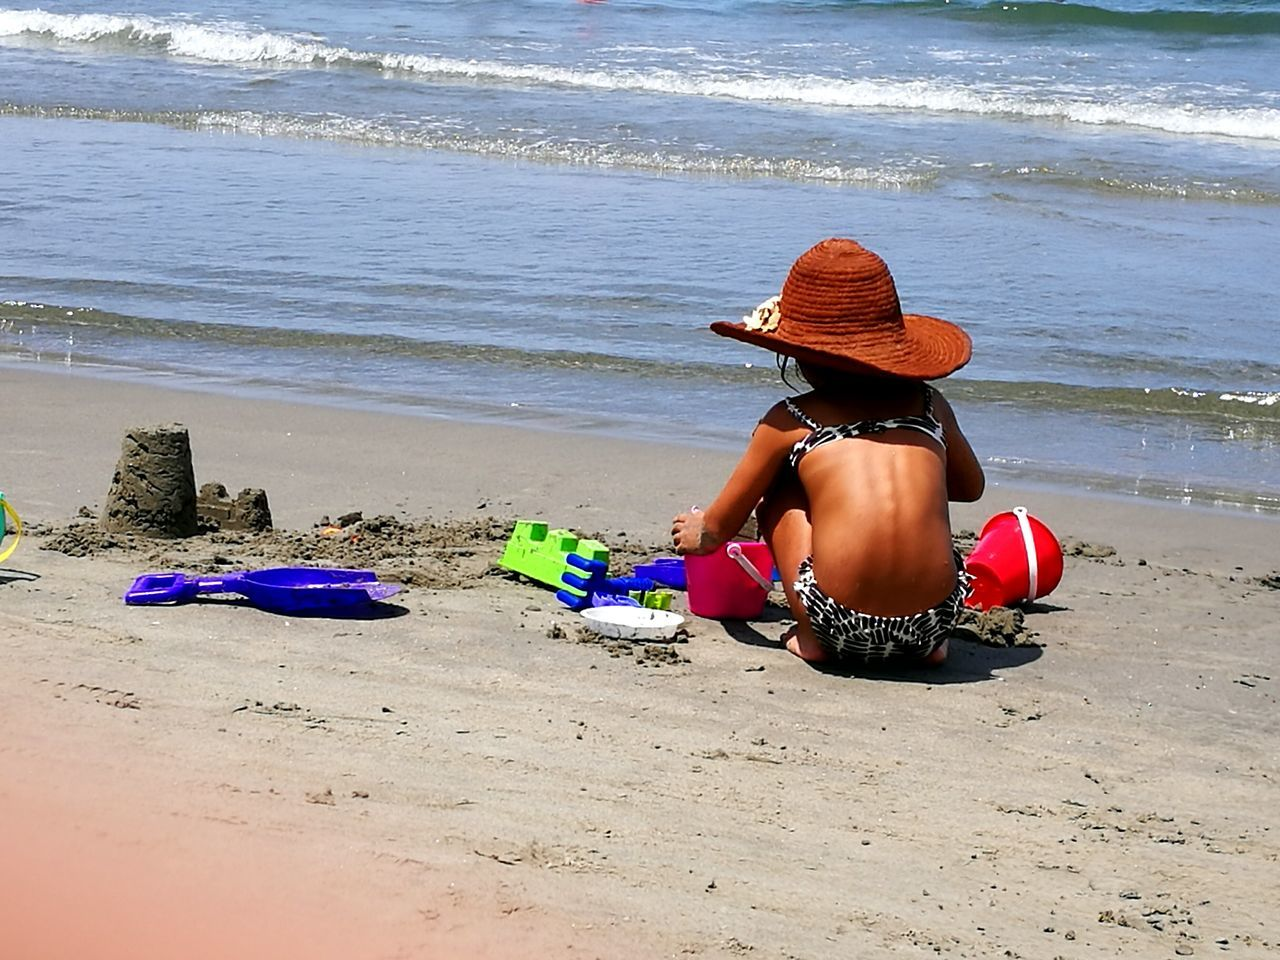 Beach Sand Sea Water Child One Person Outdoors Vacations Full Length Leisure Activity Childhood Day People Nature Adult Human Body Part Streetphotography Travel Photography Vacation City Street Travel Destinations Editorialphotography Cartagena, Colombia